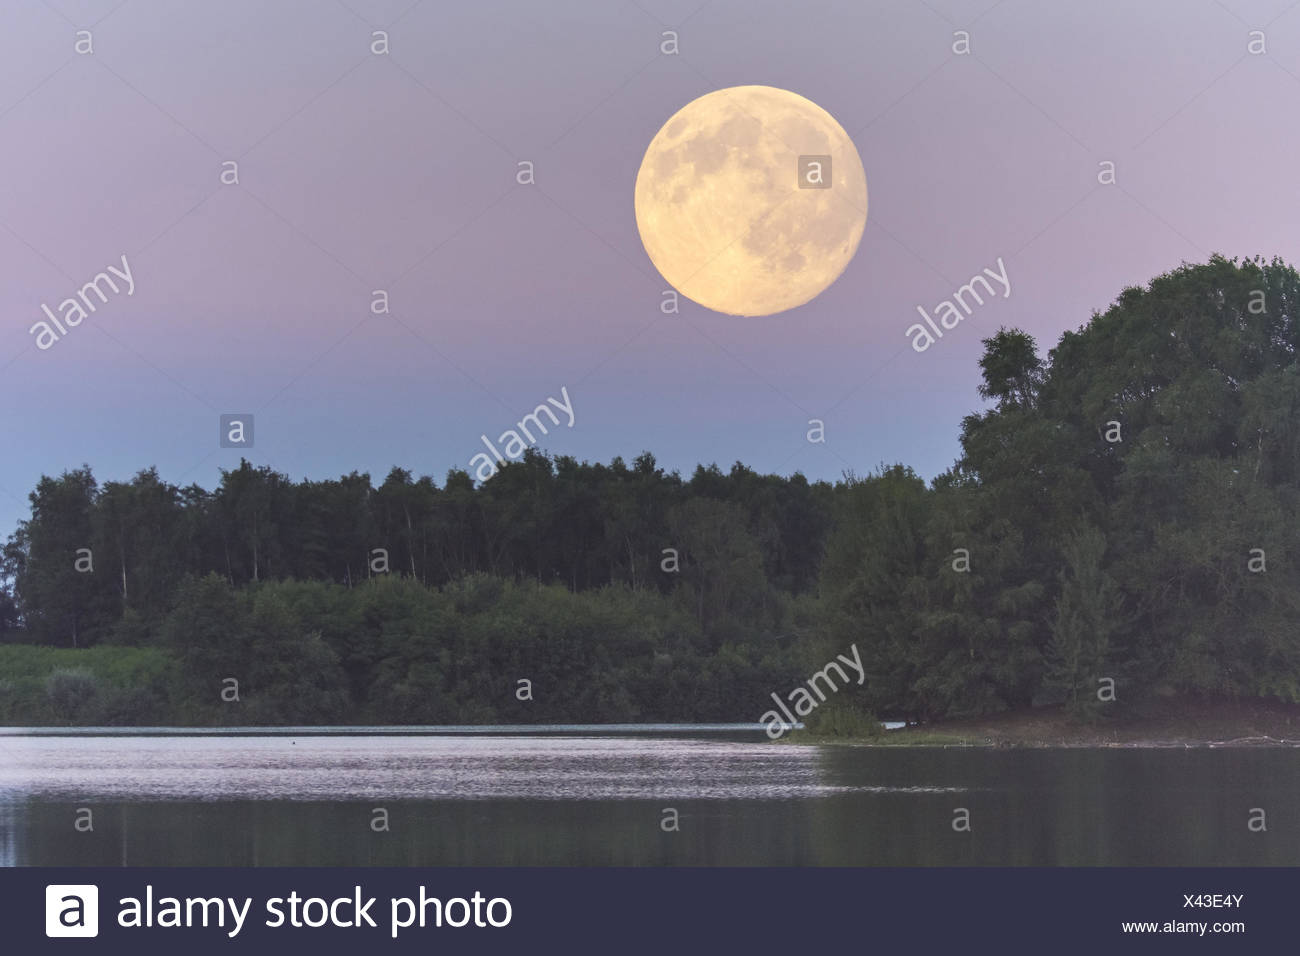 full moon over the dammer bergsee near damme (dümmer), vechta district, lower saxony, germany Stock Photo